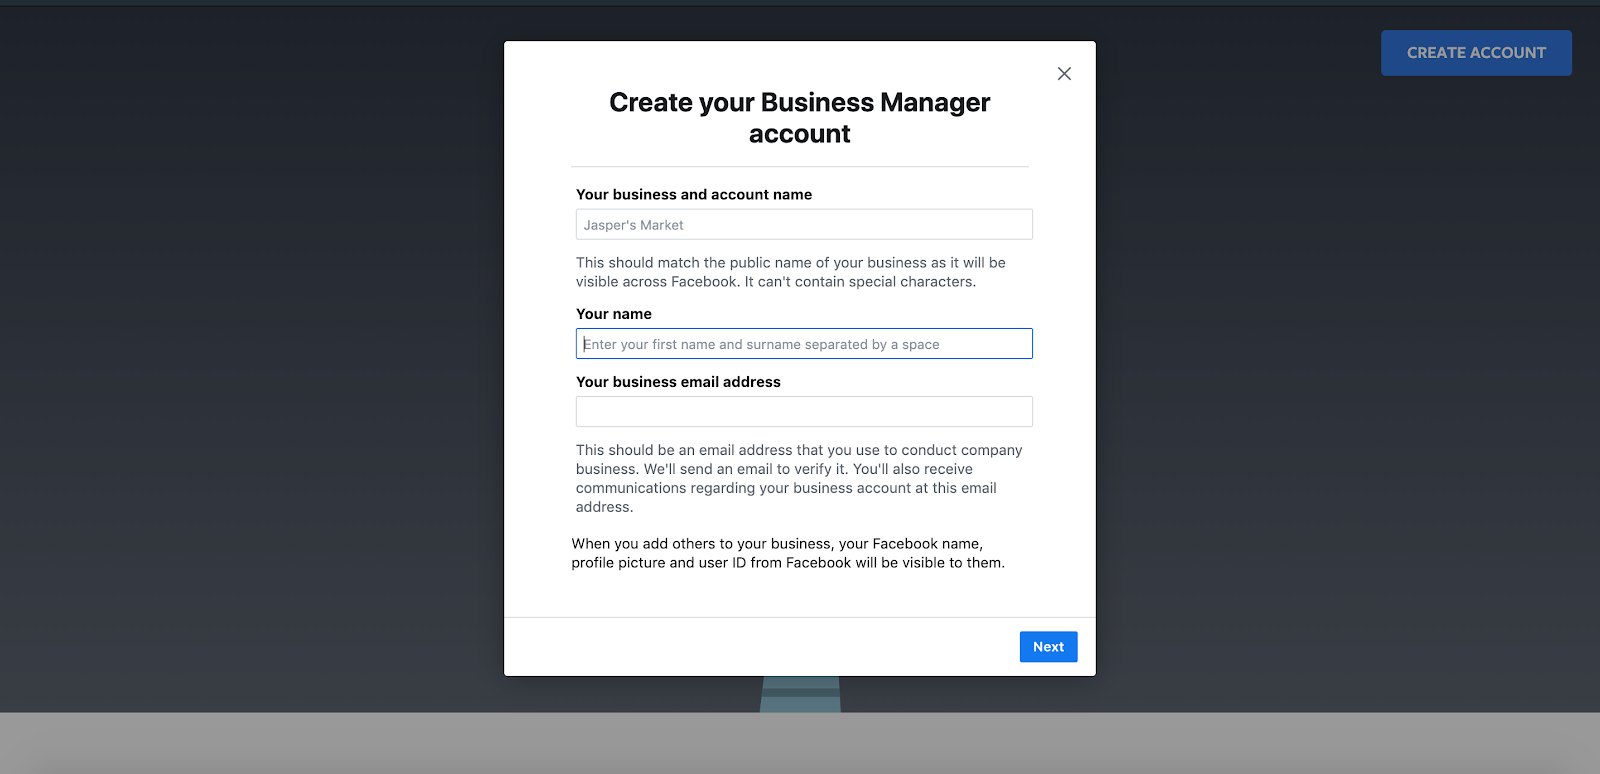 How create Influencer's Business Manager account for Whitelisting